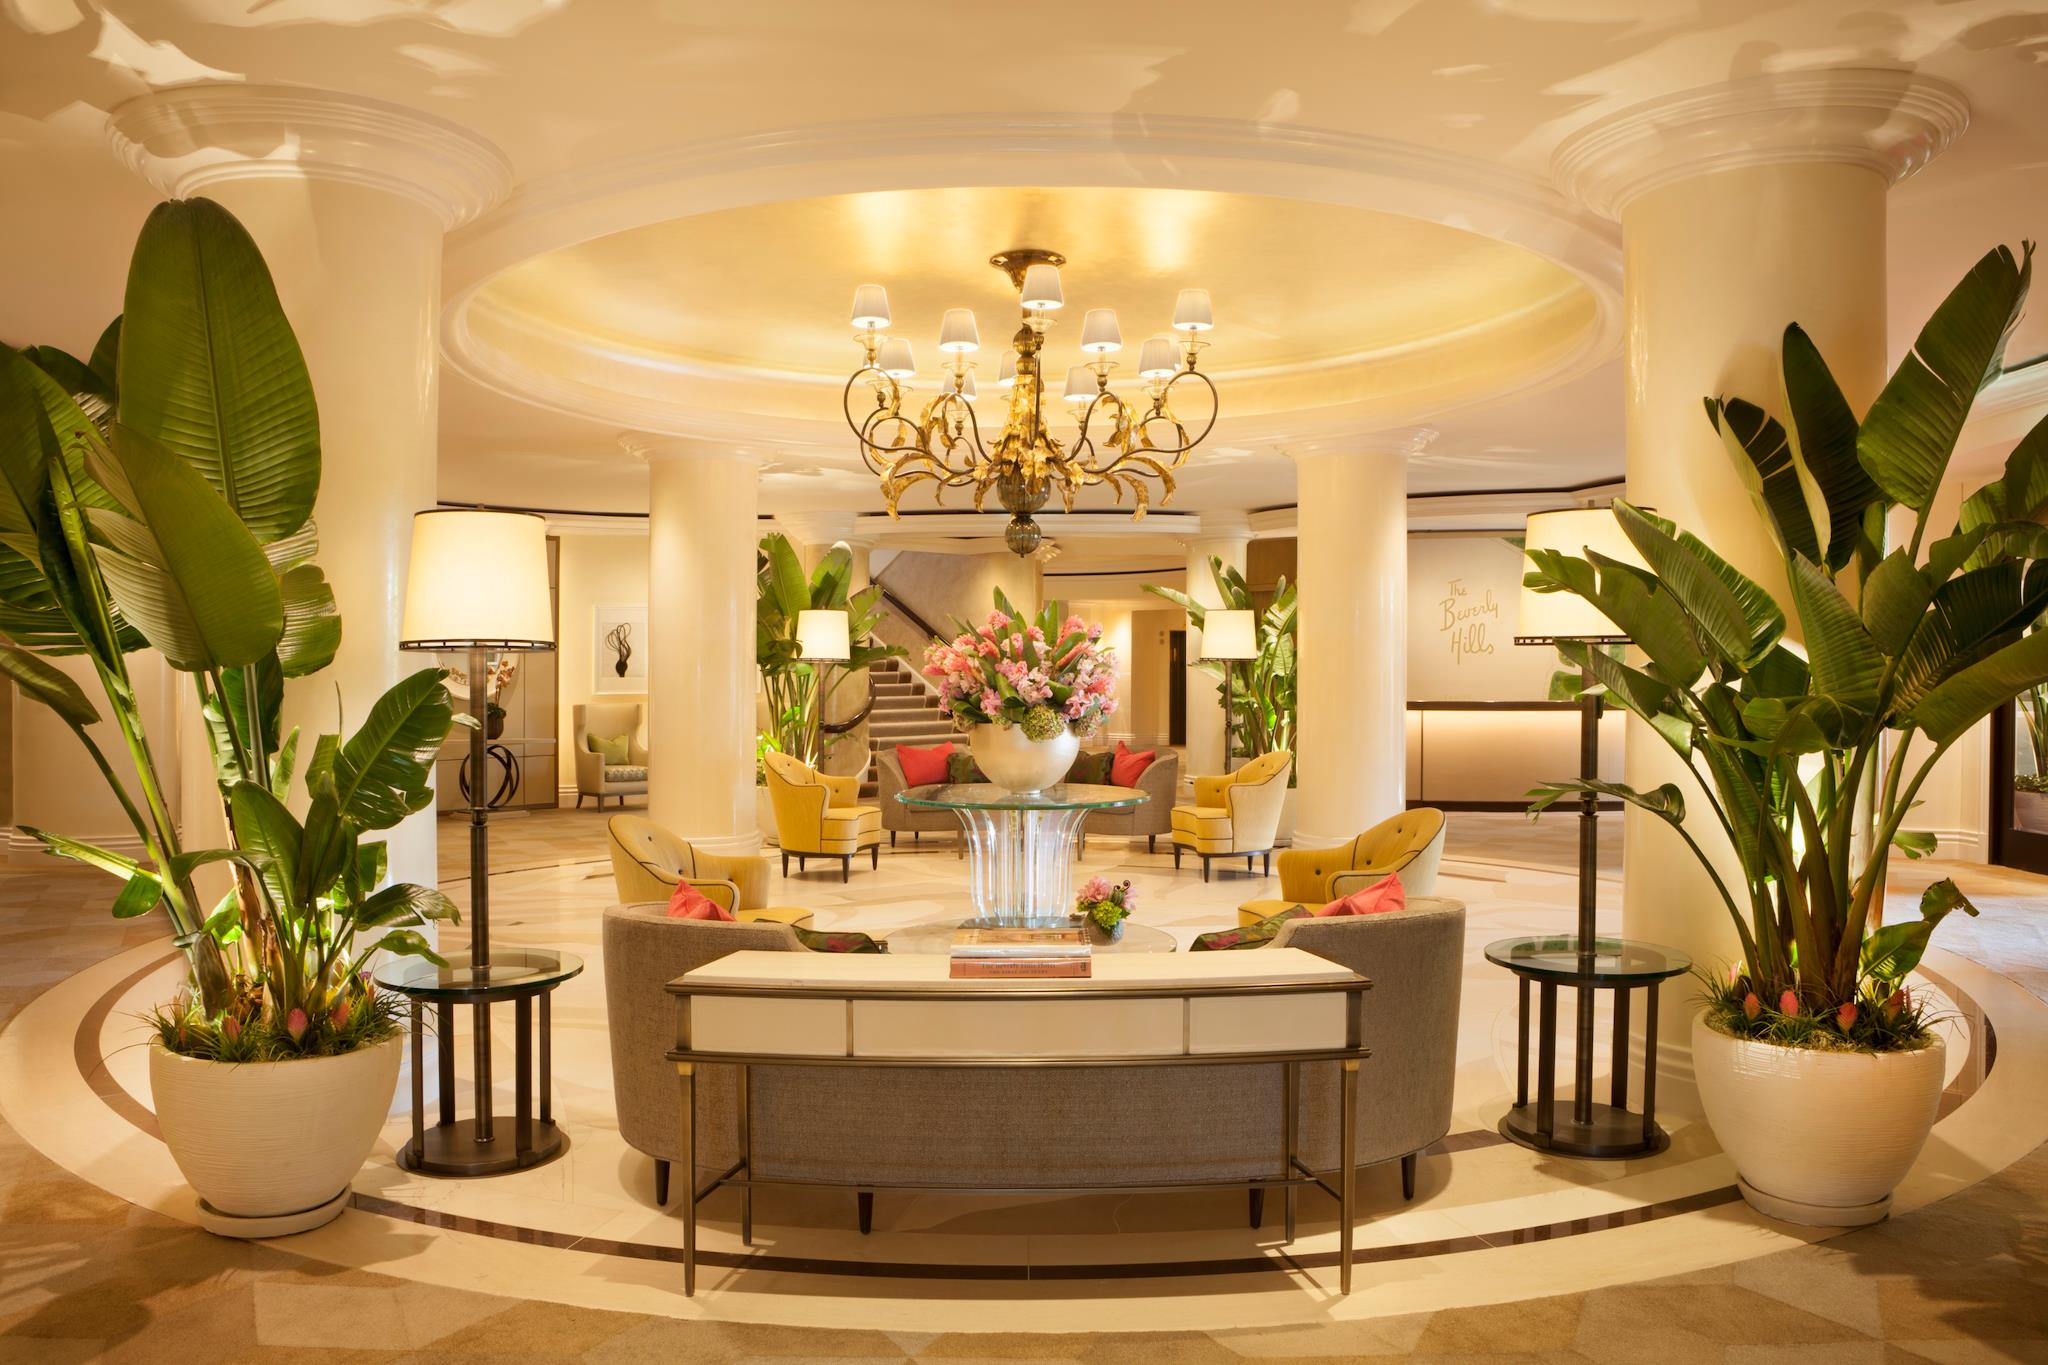 Tropical modern d cor at the beverly hills hotel for Home decoration photos